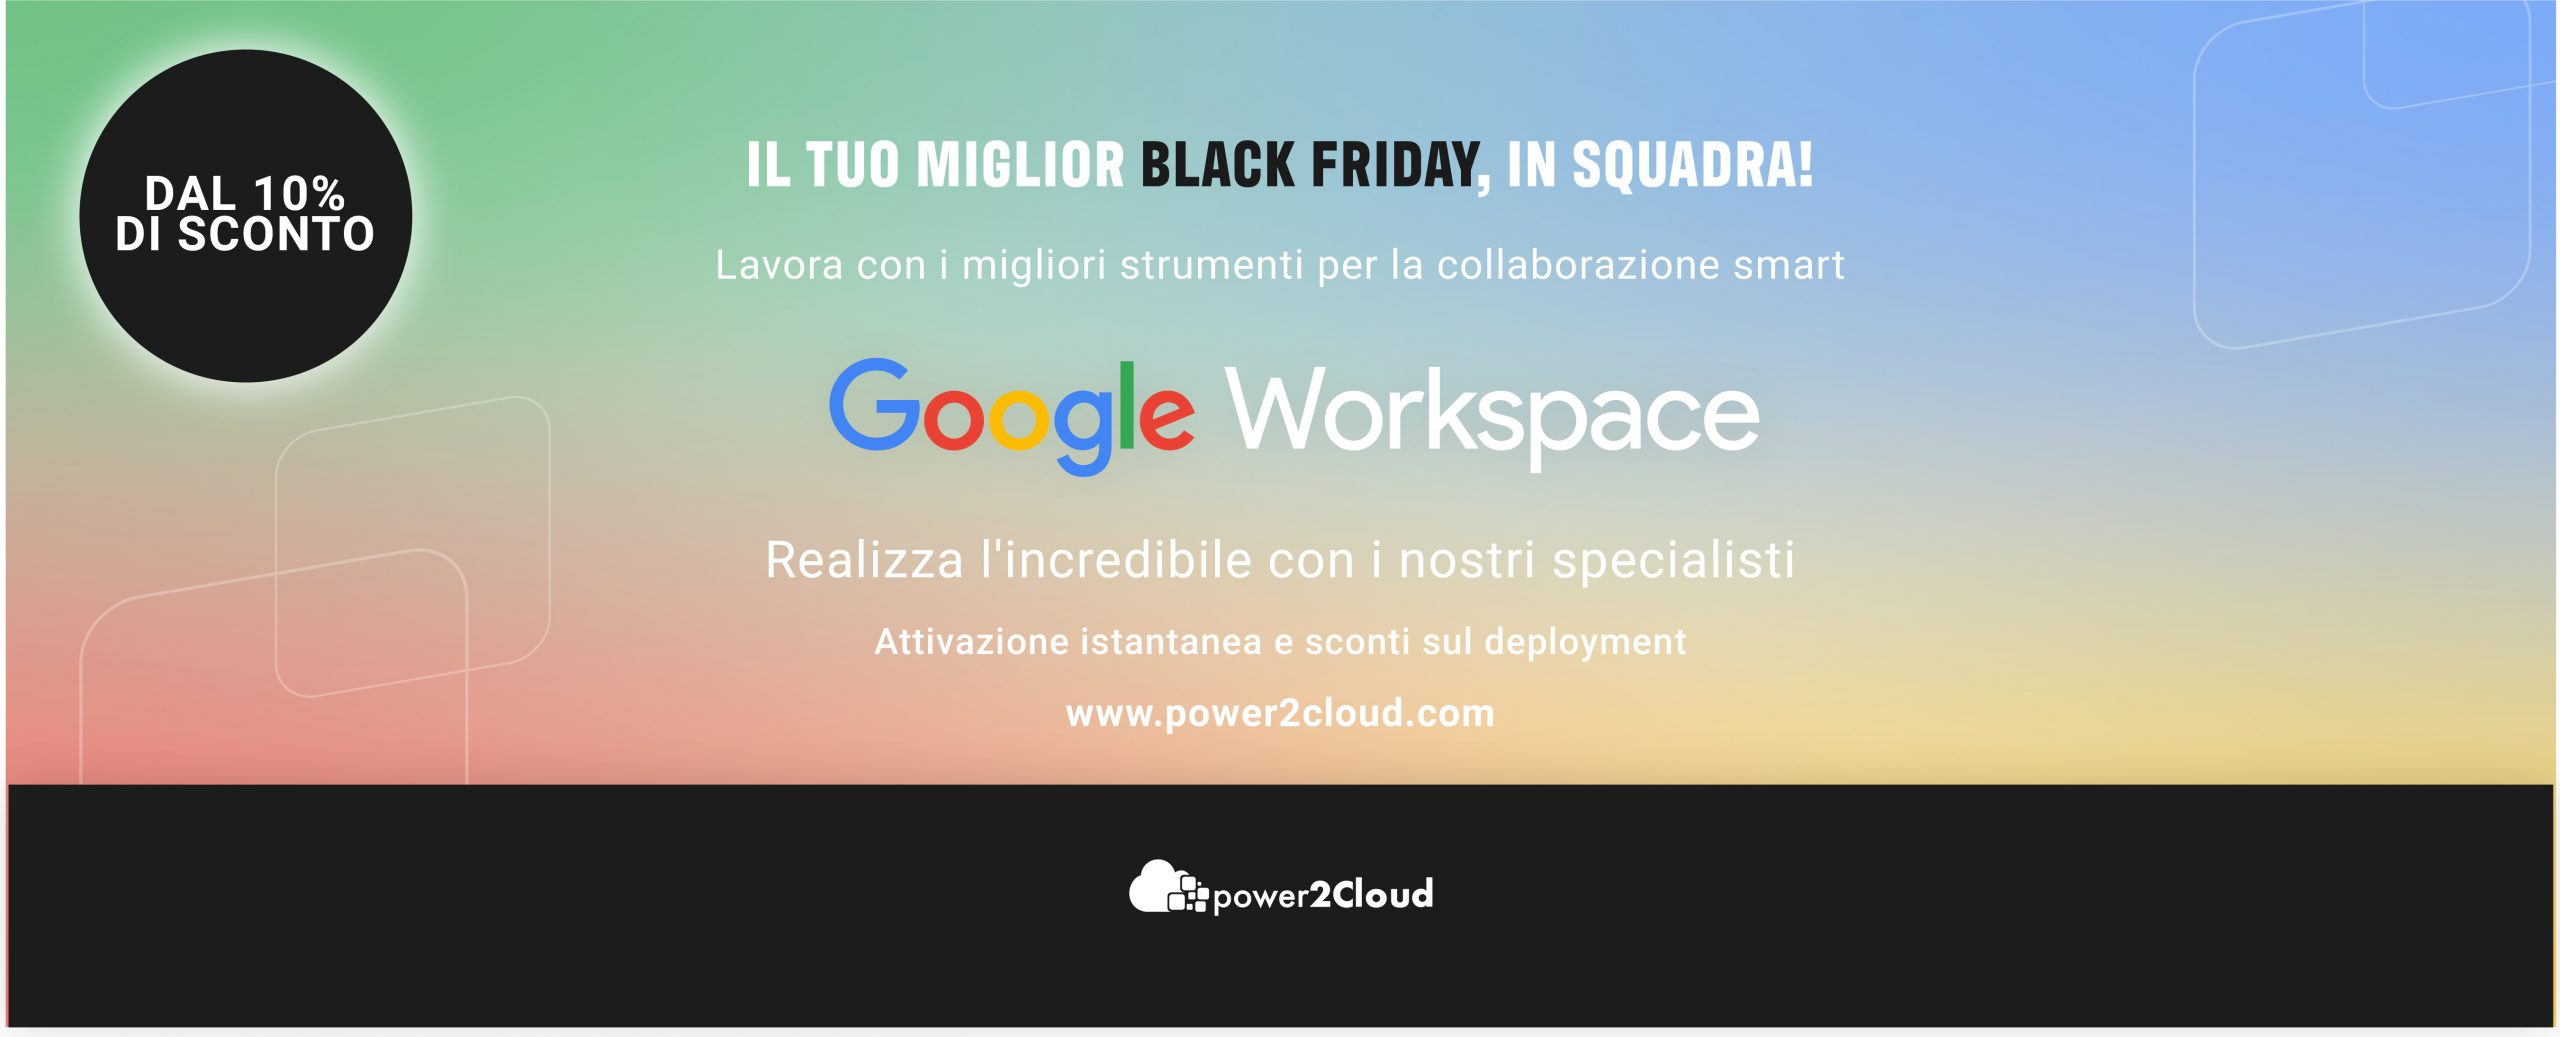 Come aumentare collaboration e produttività anche in smart working